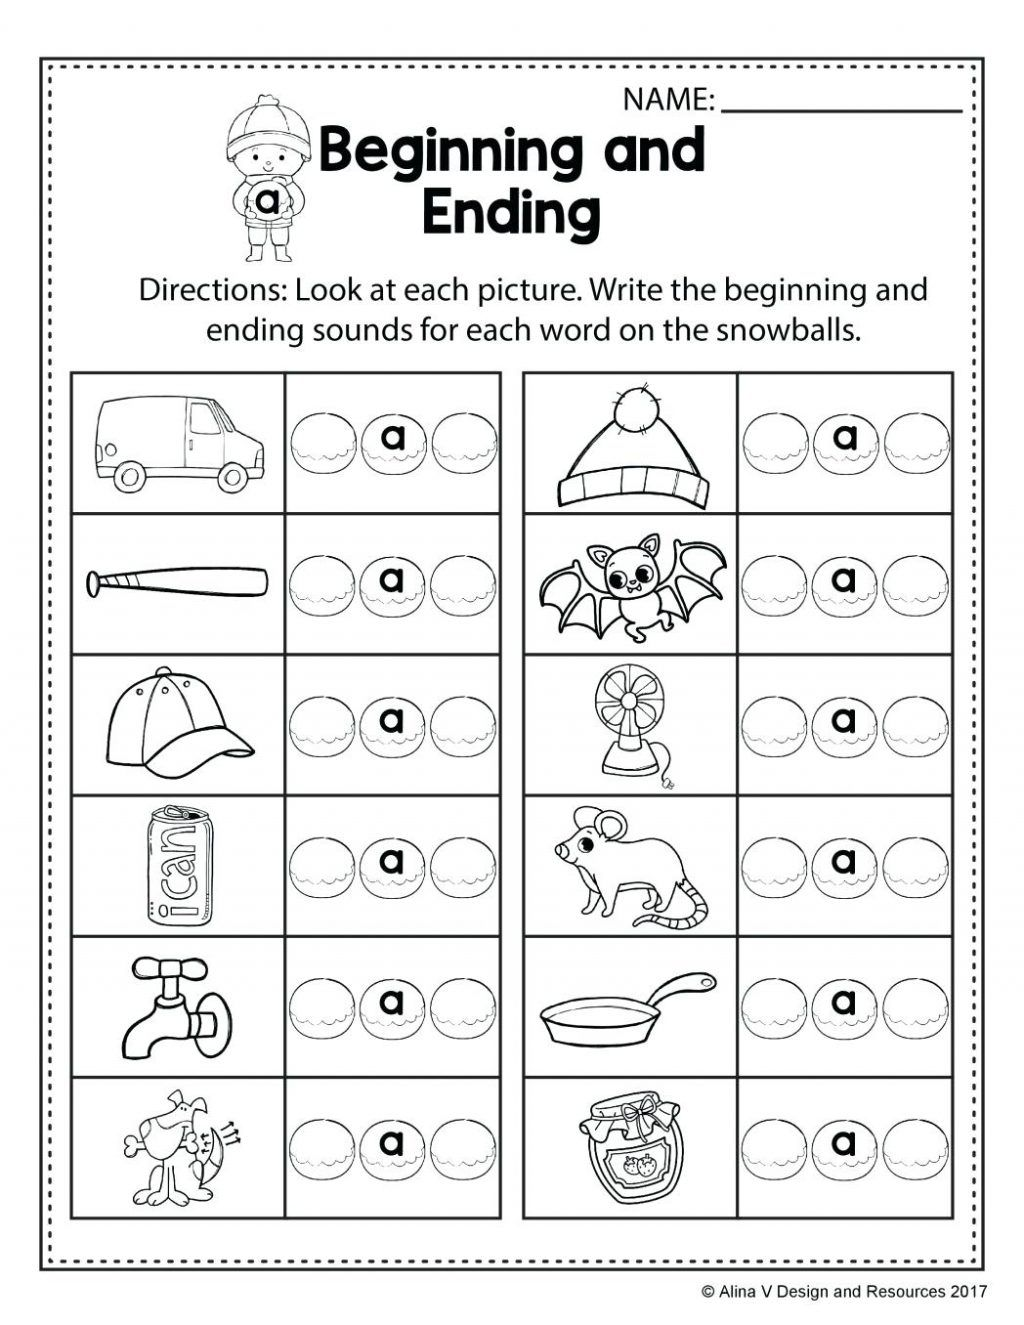 Worksheet Ideas Marvelous Pre Handwriting Worksheets